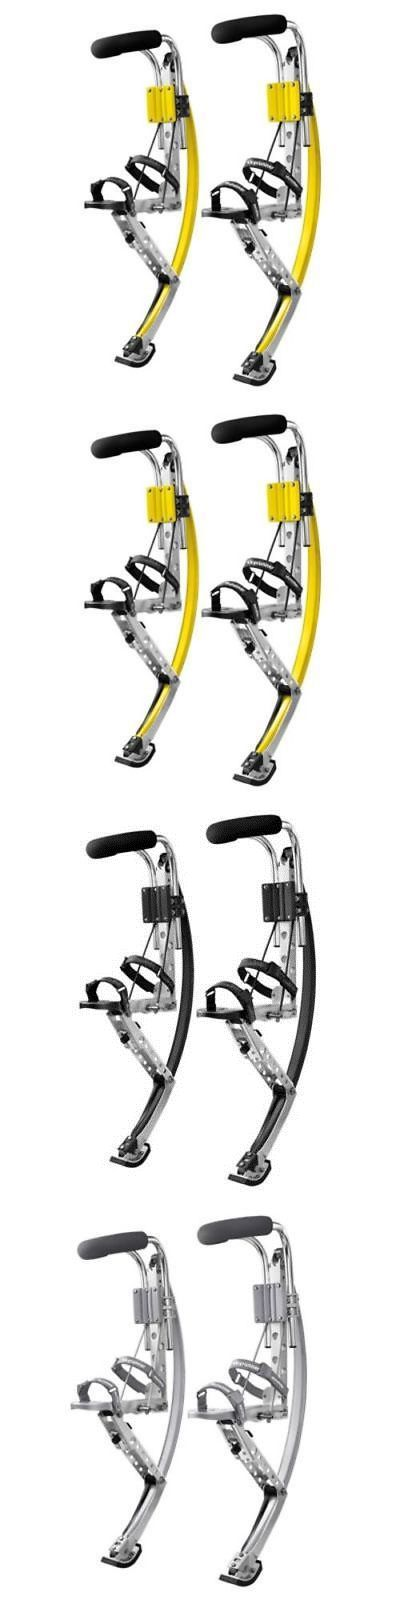 Other Fitness Running and Yoga 13362: 200 Ibs 1 Pairs Adult Skyrunner Shoes Men Jumping Stilts Men Women Fitness Exe -> BUY IT NOW ONLY: $188.99 on eBay!